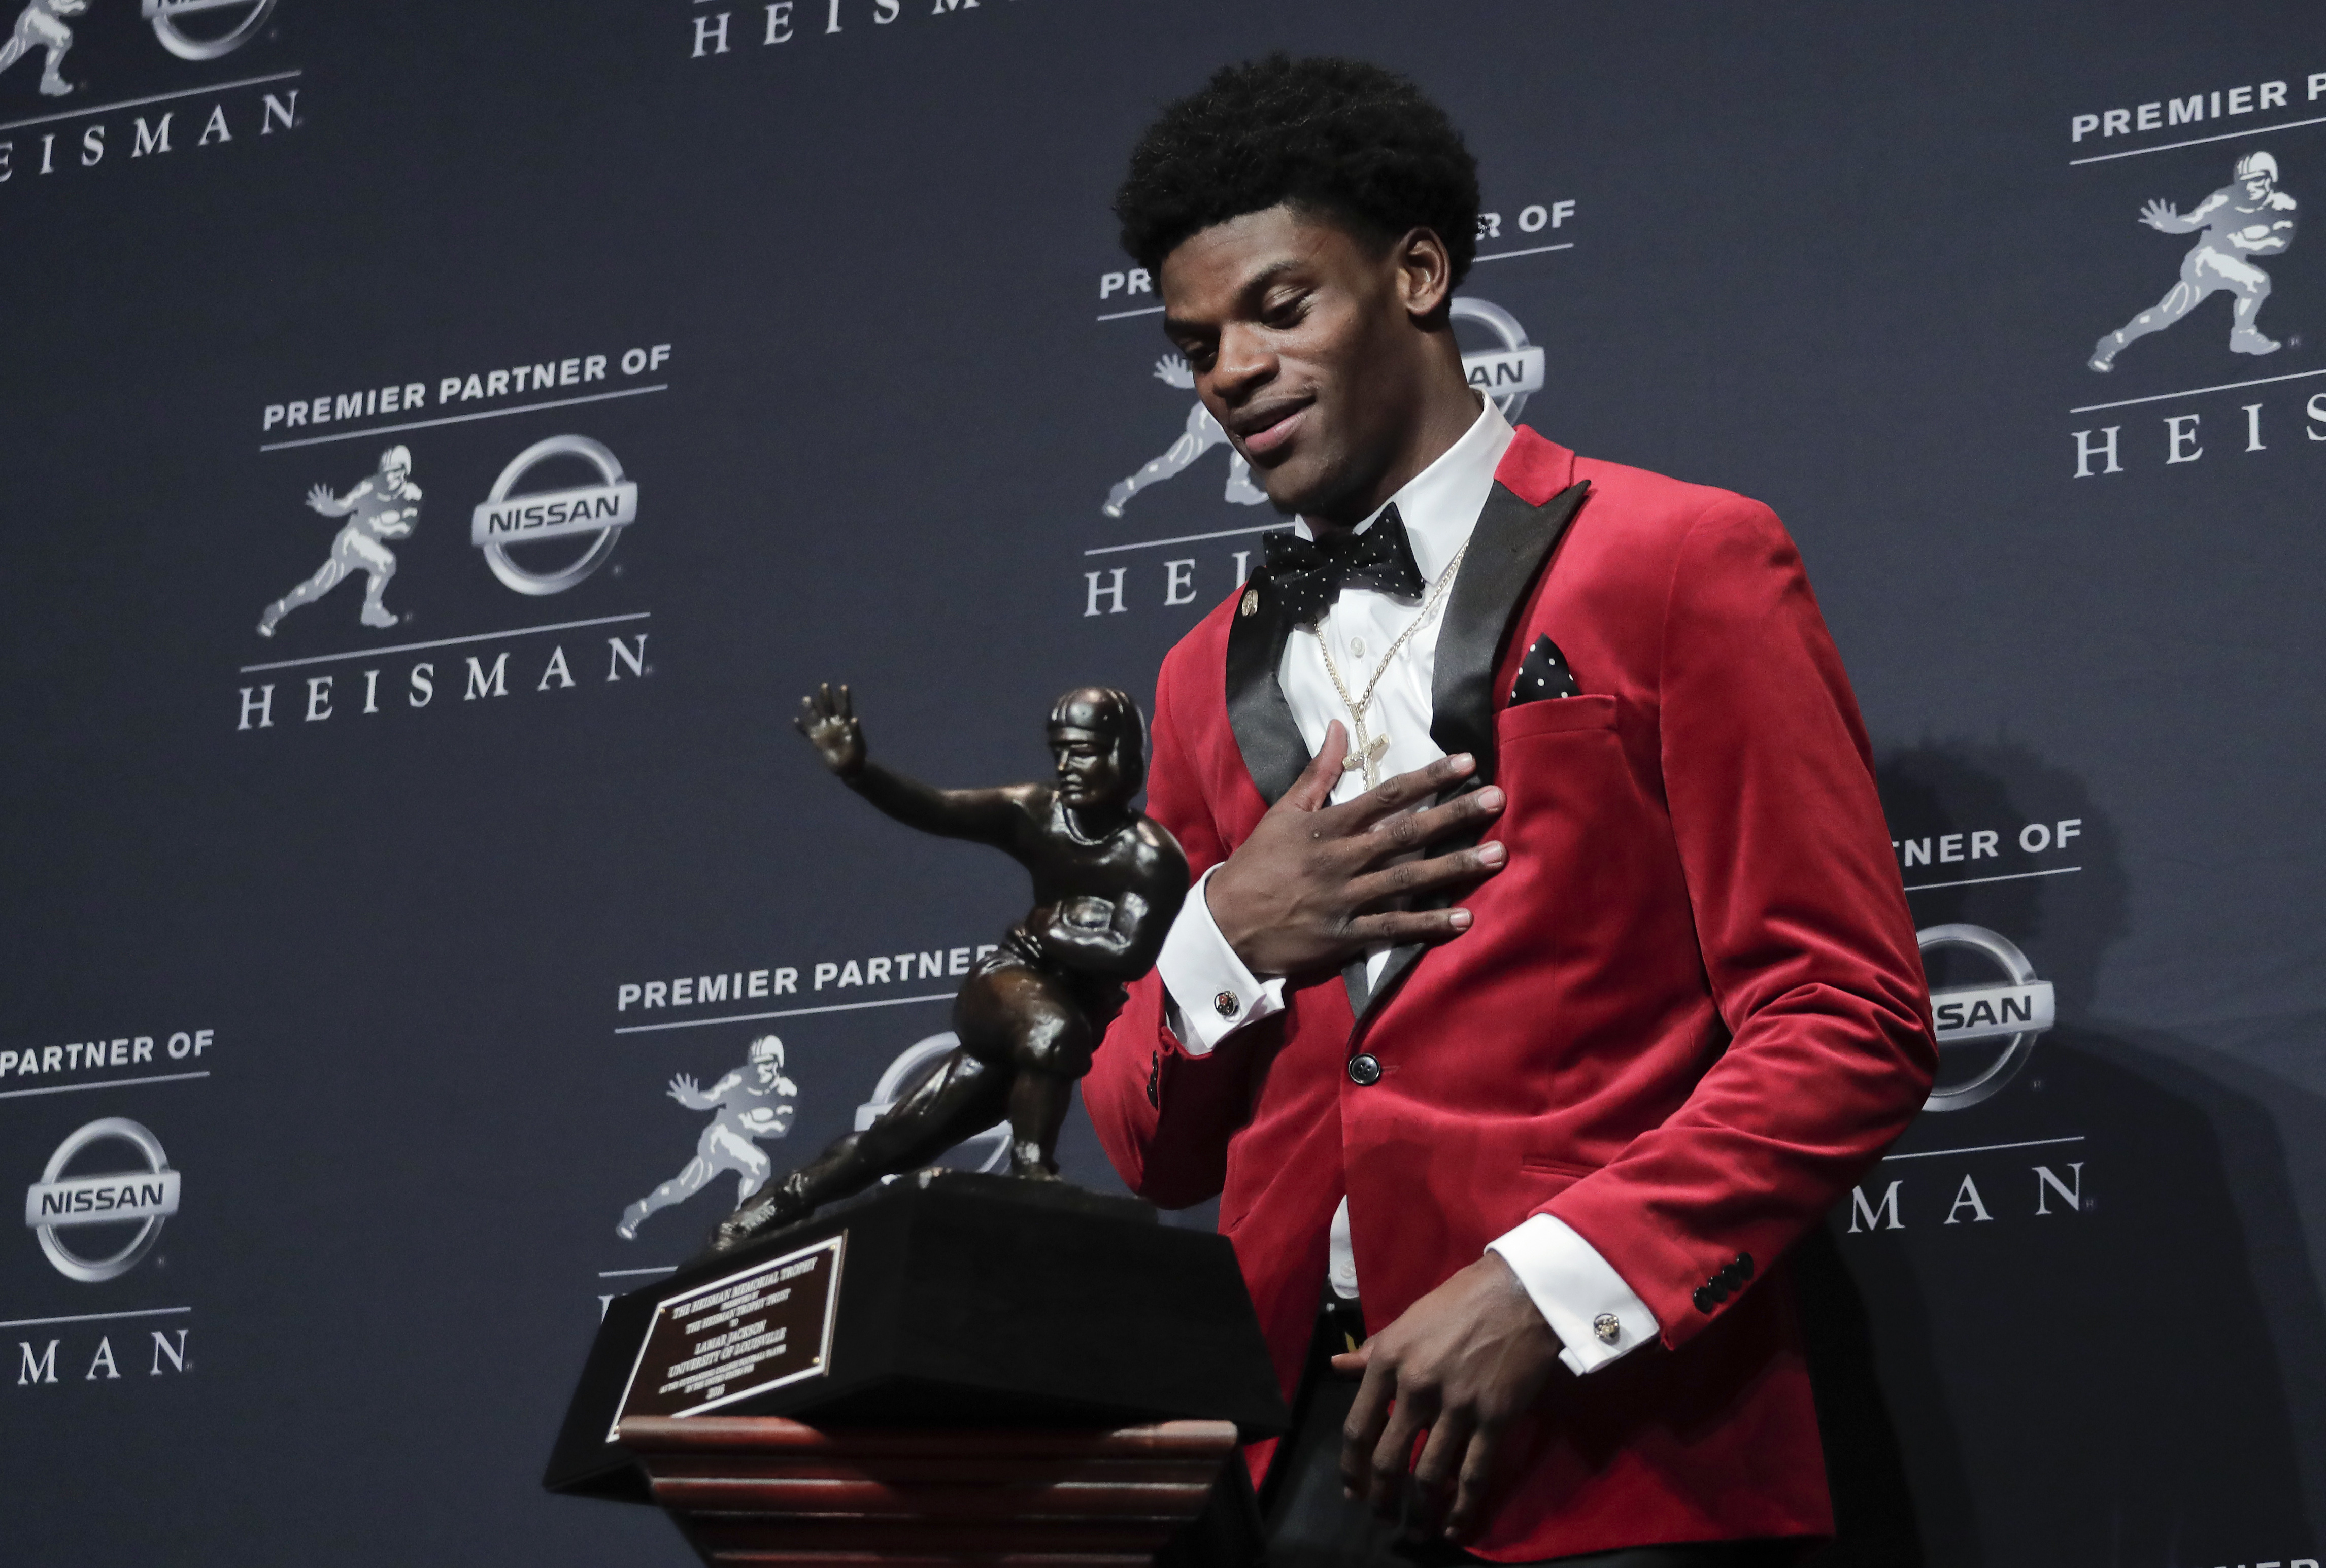 Louisville's Lamar Jackson prepares to pick up the the Heisman Trophy after winning the Heisman Trophy award, Saturday, Dec. 10, 2016, in New York. (AP Photo/Julie Jacobson)